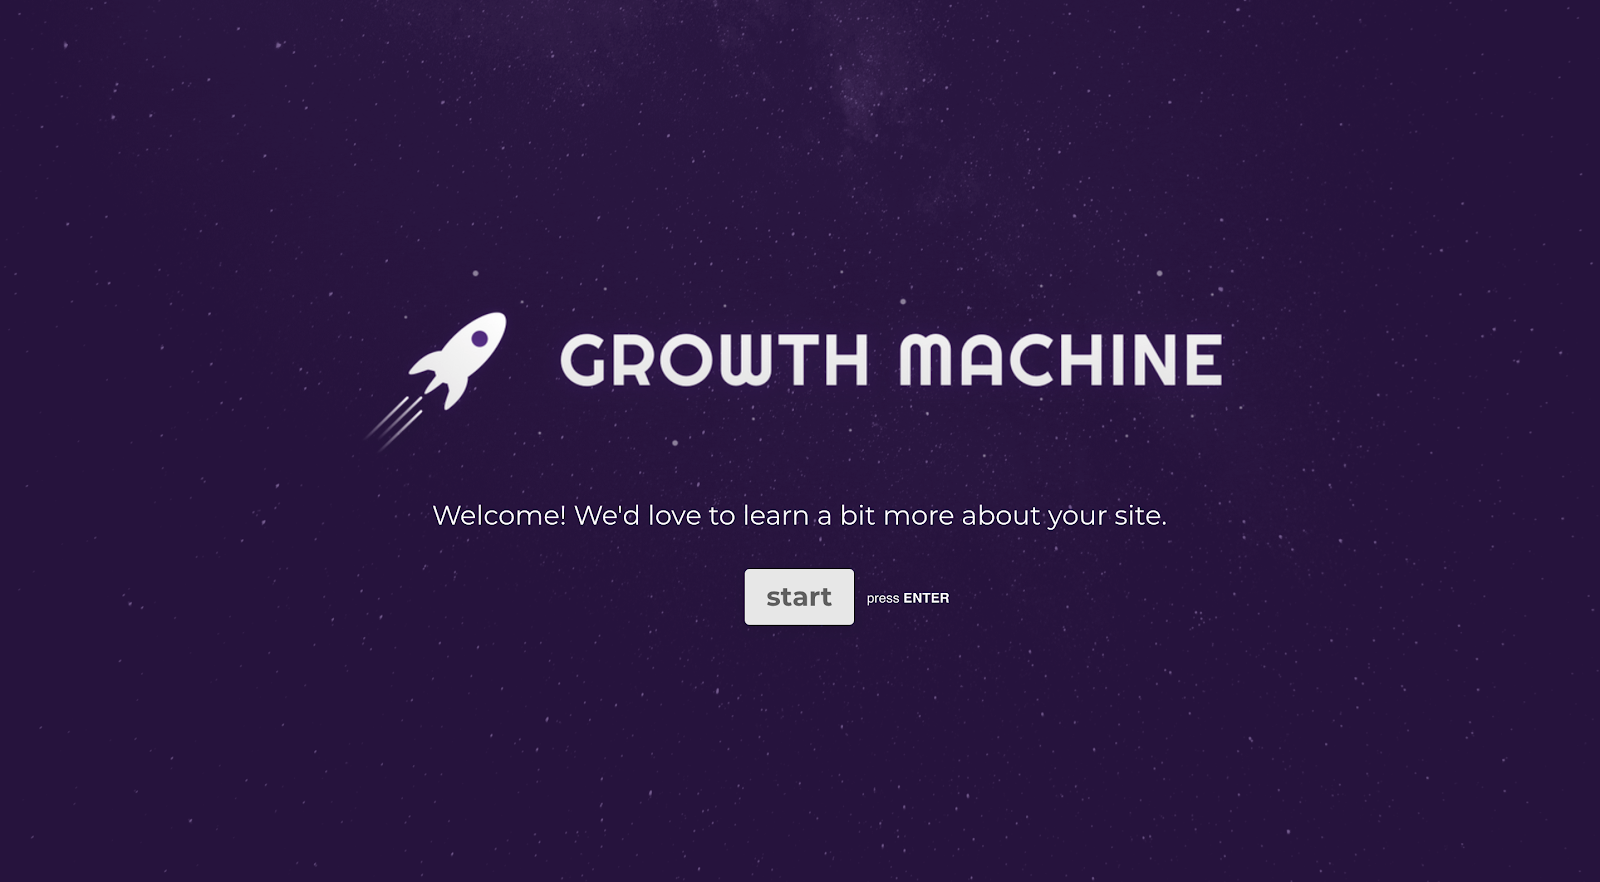 growth machine typeform screenshot